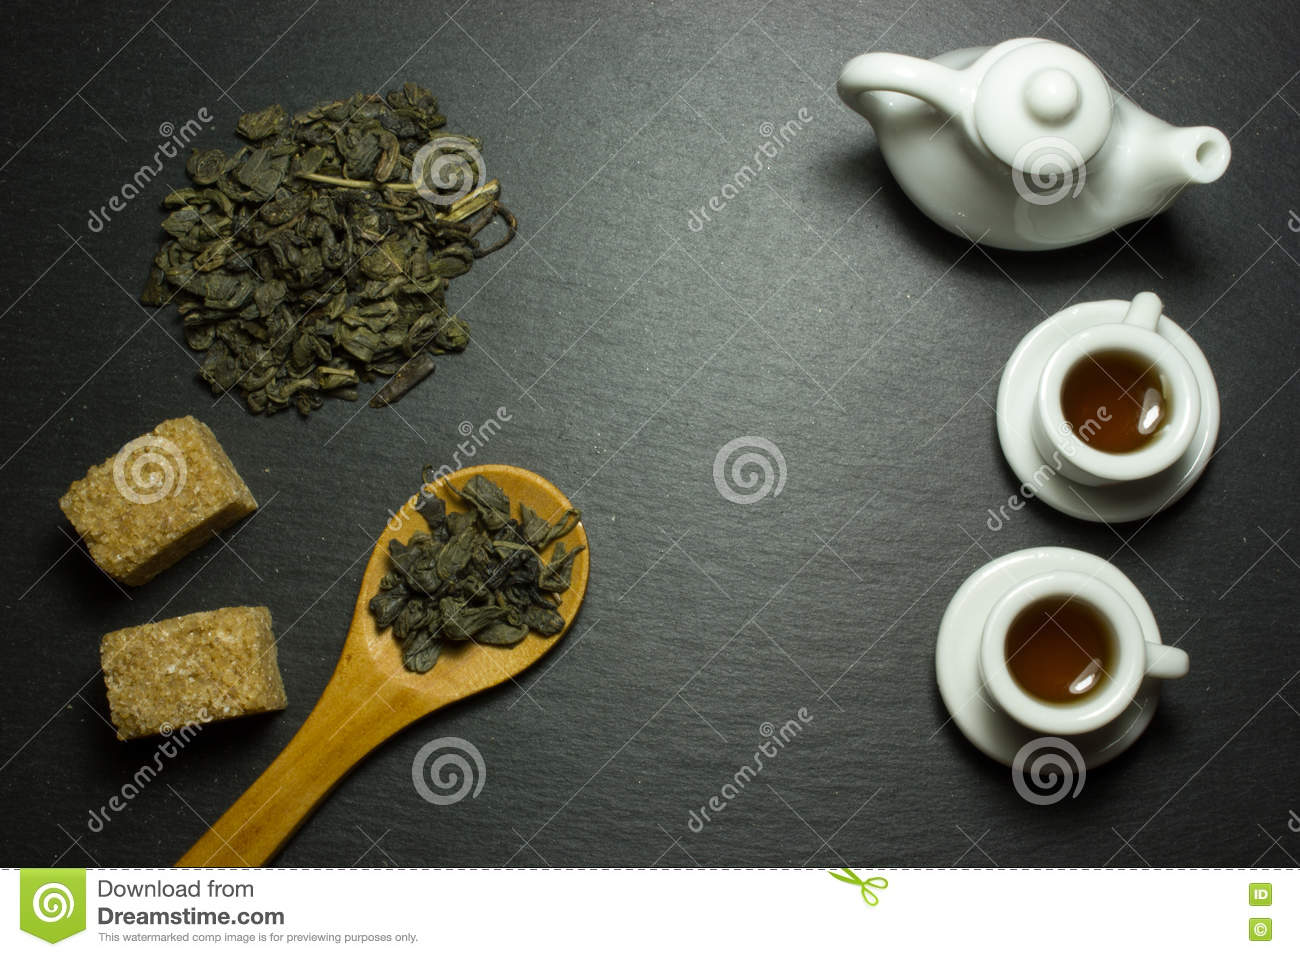 Cup and tea in a wooden spoon